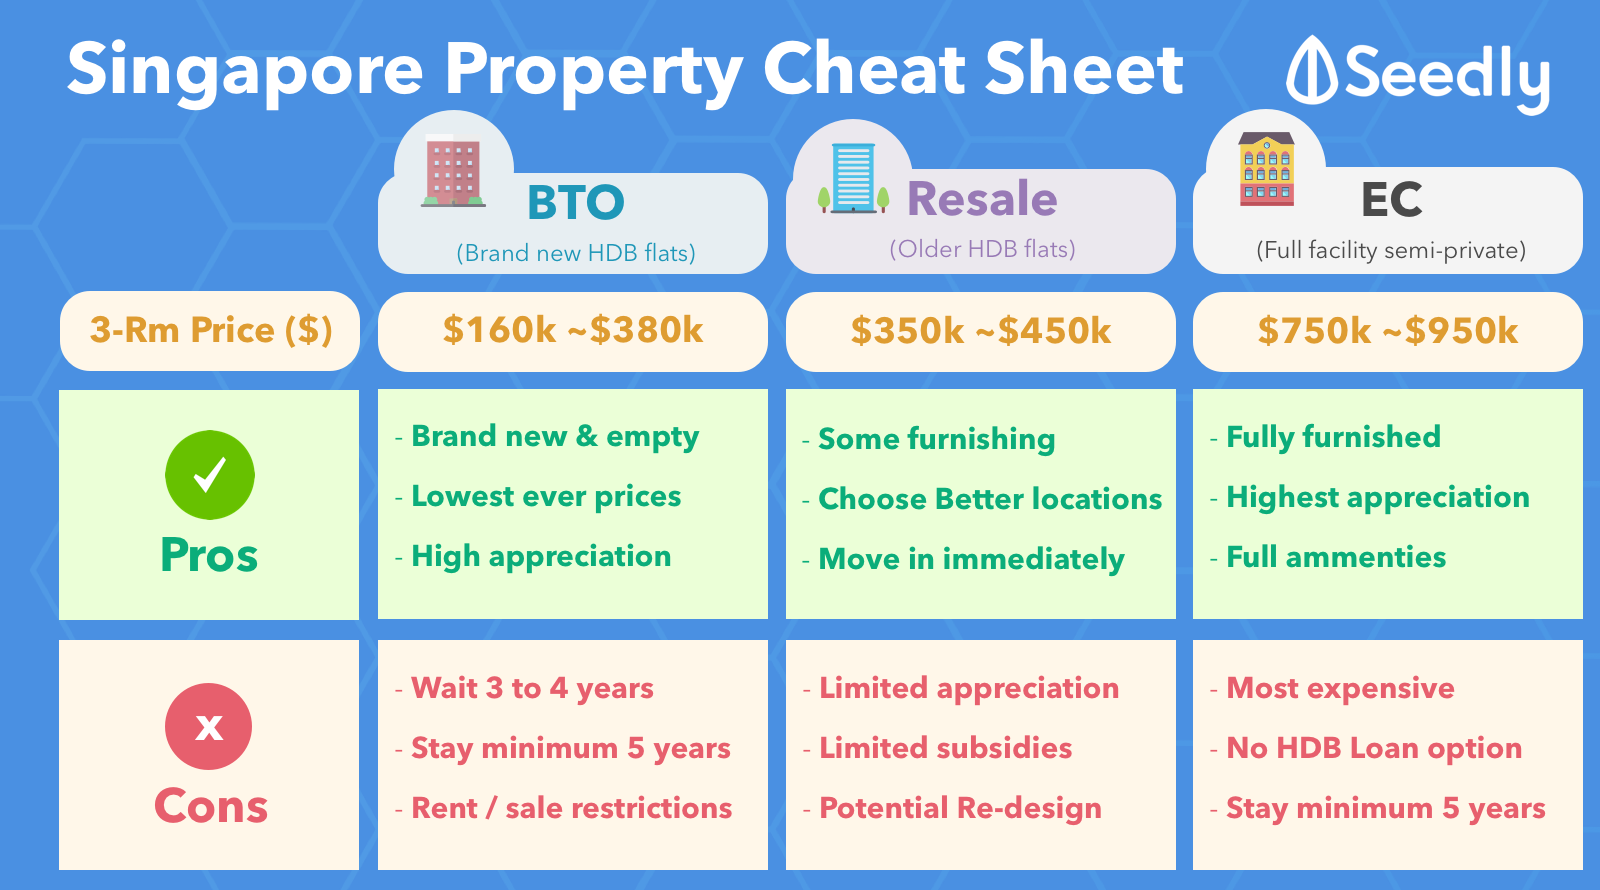 Seedly Property Singapore EC Resale BTO